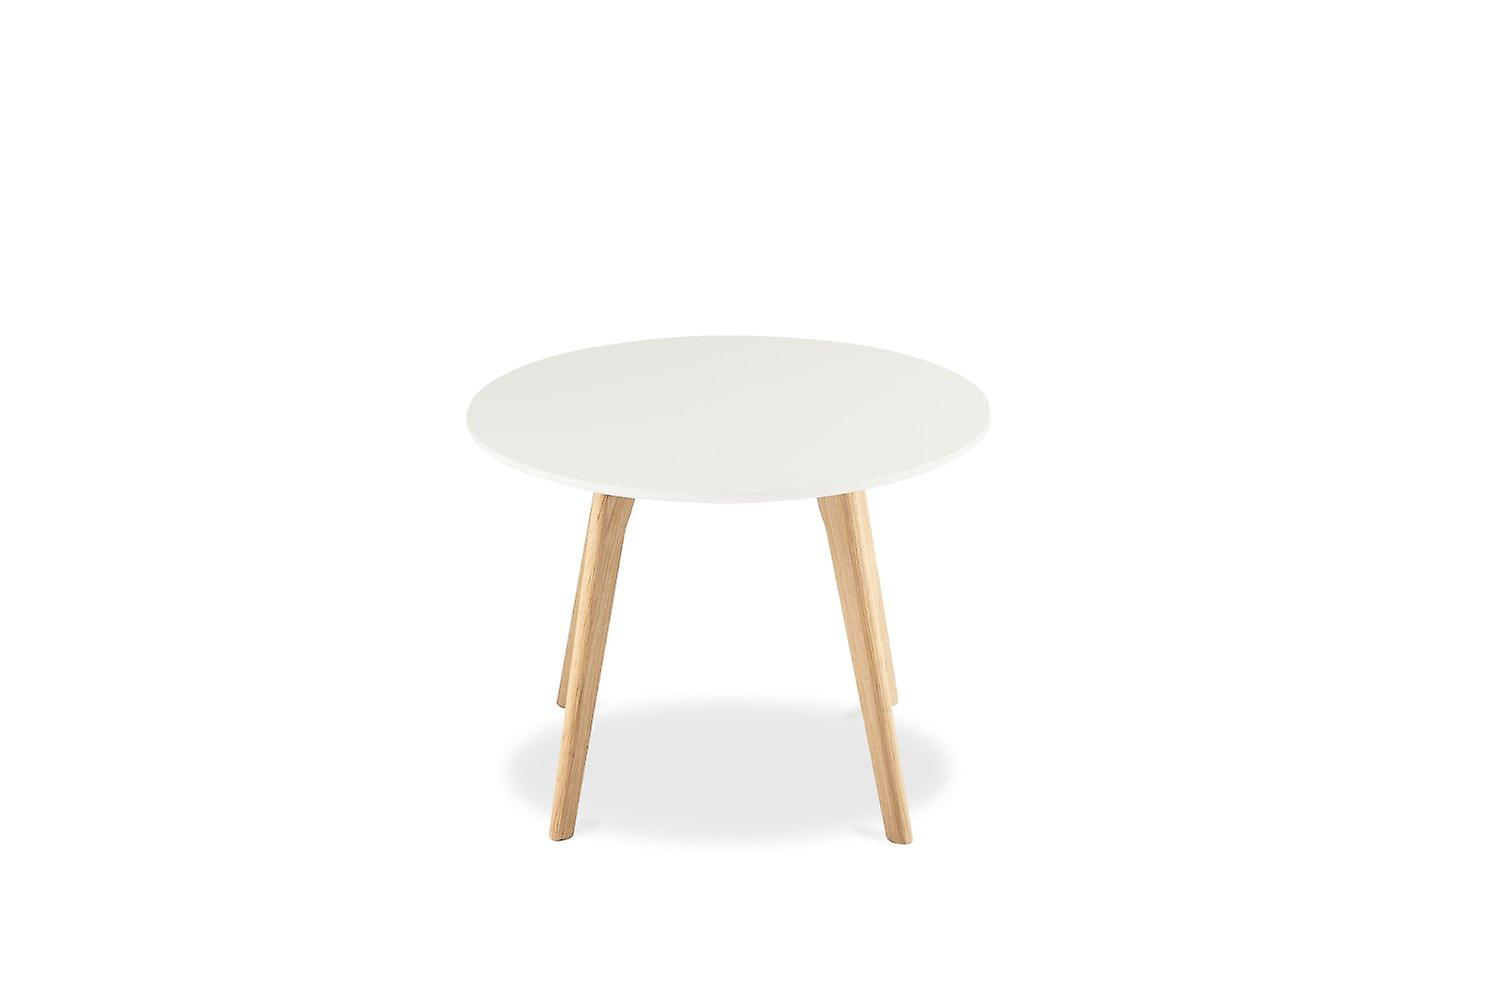 Furnhouse Life Coffee Table, White Top, Natural Wooden Legs, 60x60x45 cm